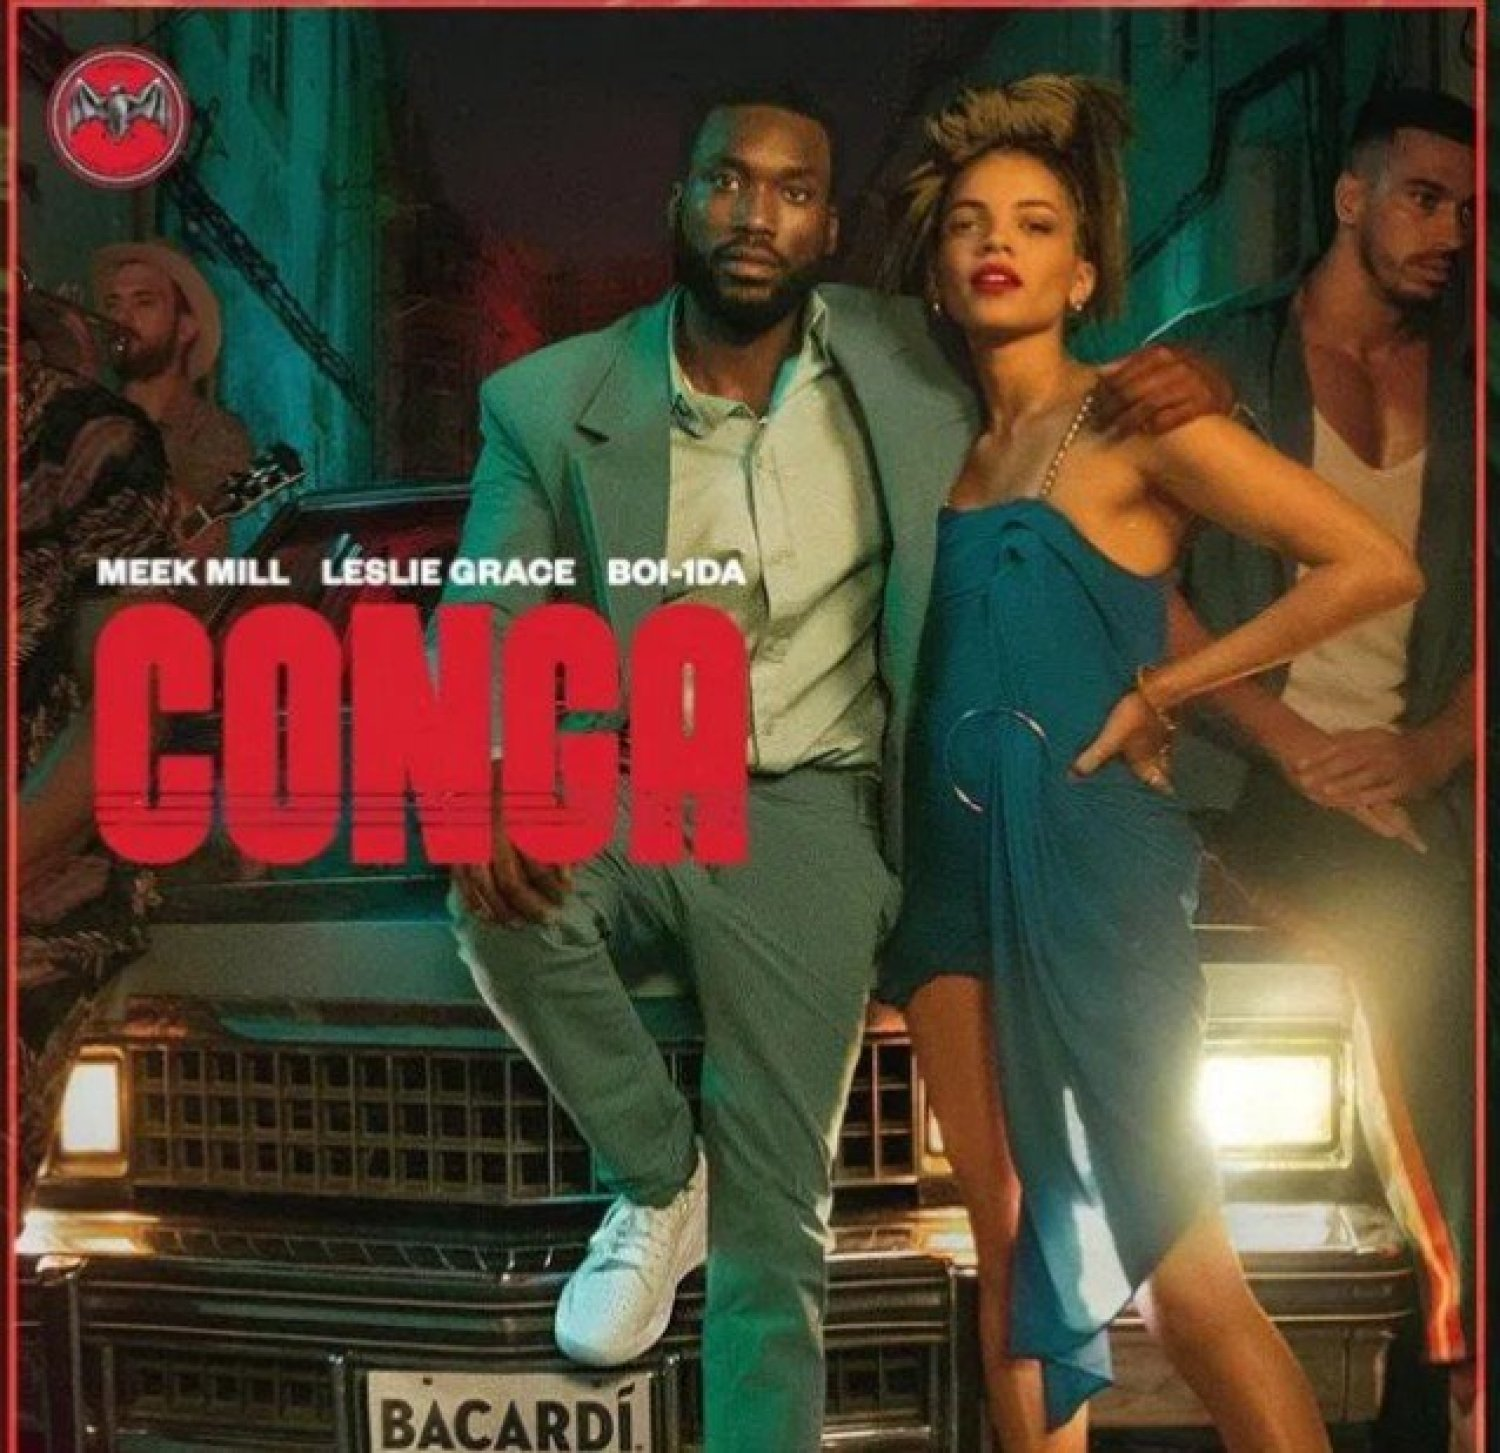 DOWNLOAD MP3: Meek Mill – CONGA Ft. Leslie Grace (Free Mp3) AUDIO 320kbps